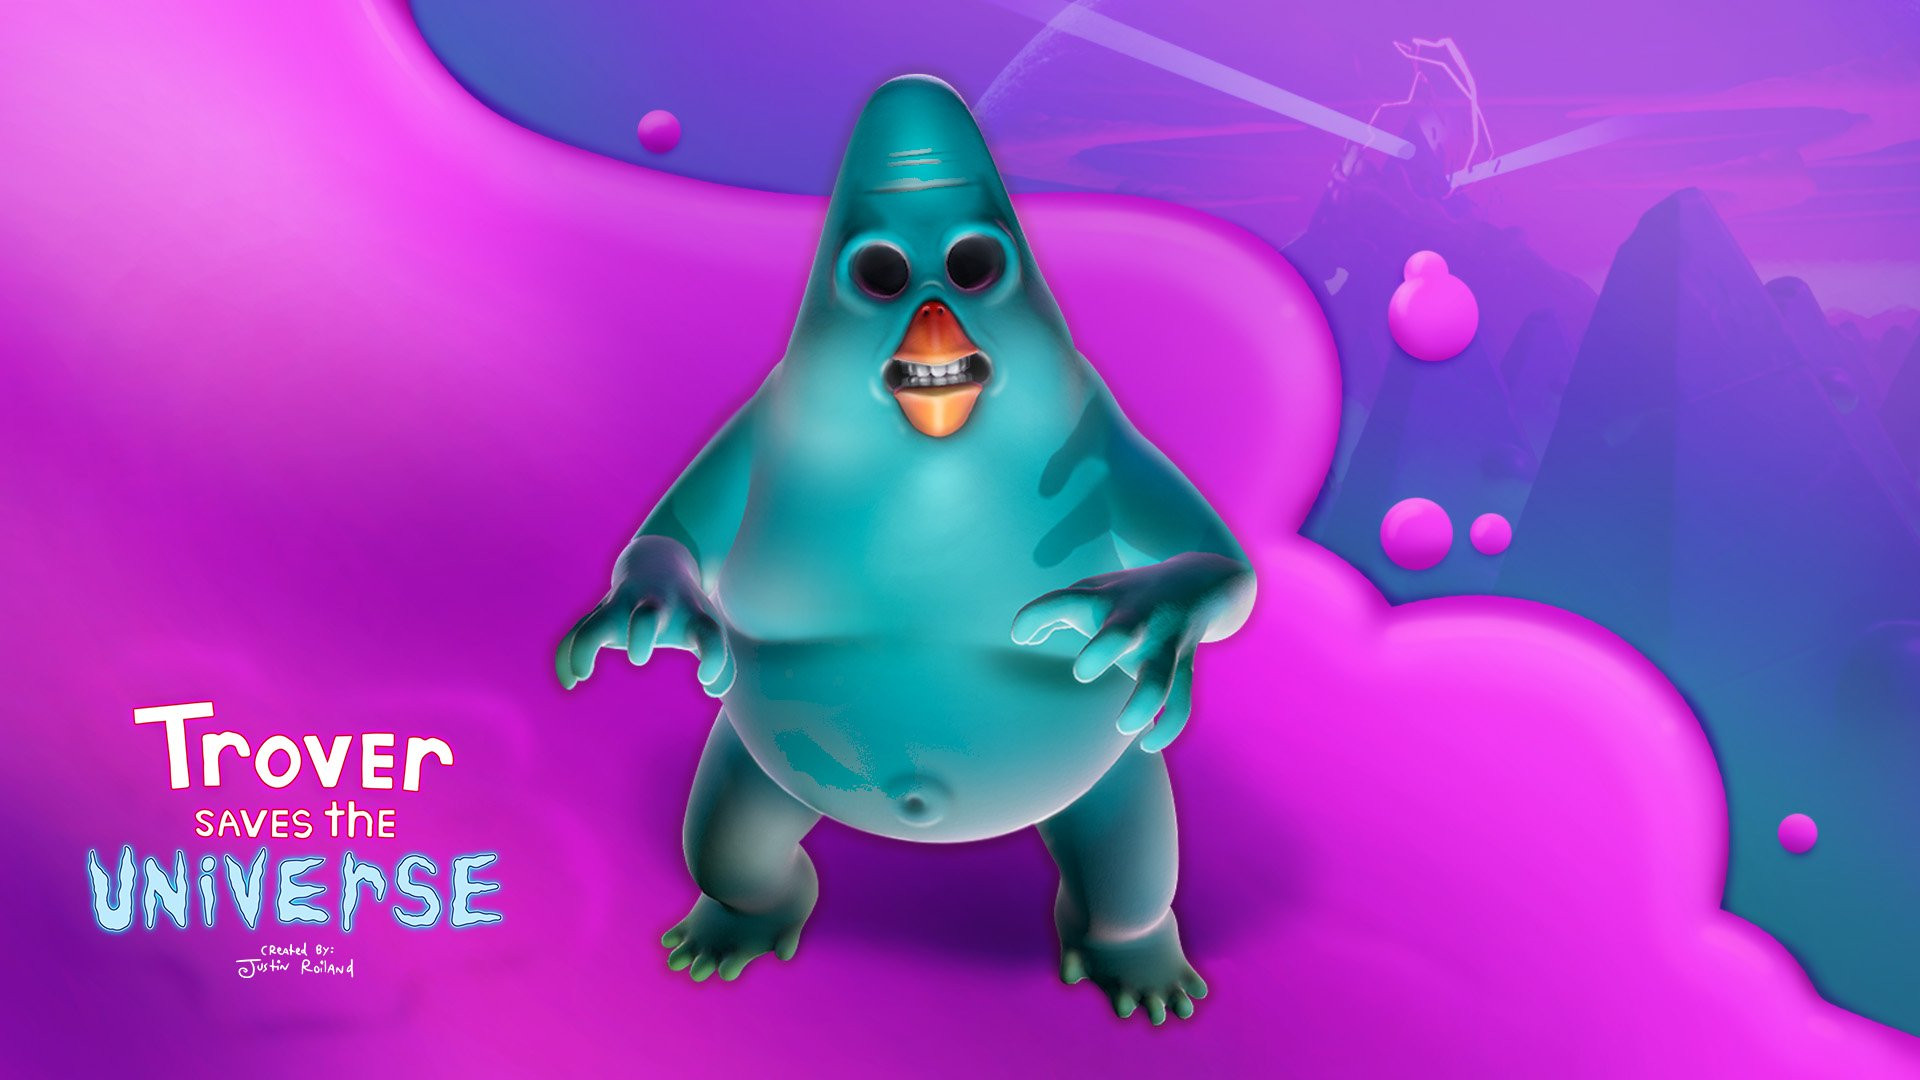 playstation wallpapers trover saves the universe desktop wallpaper 06 ps4 us 19sep19